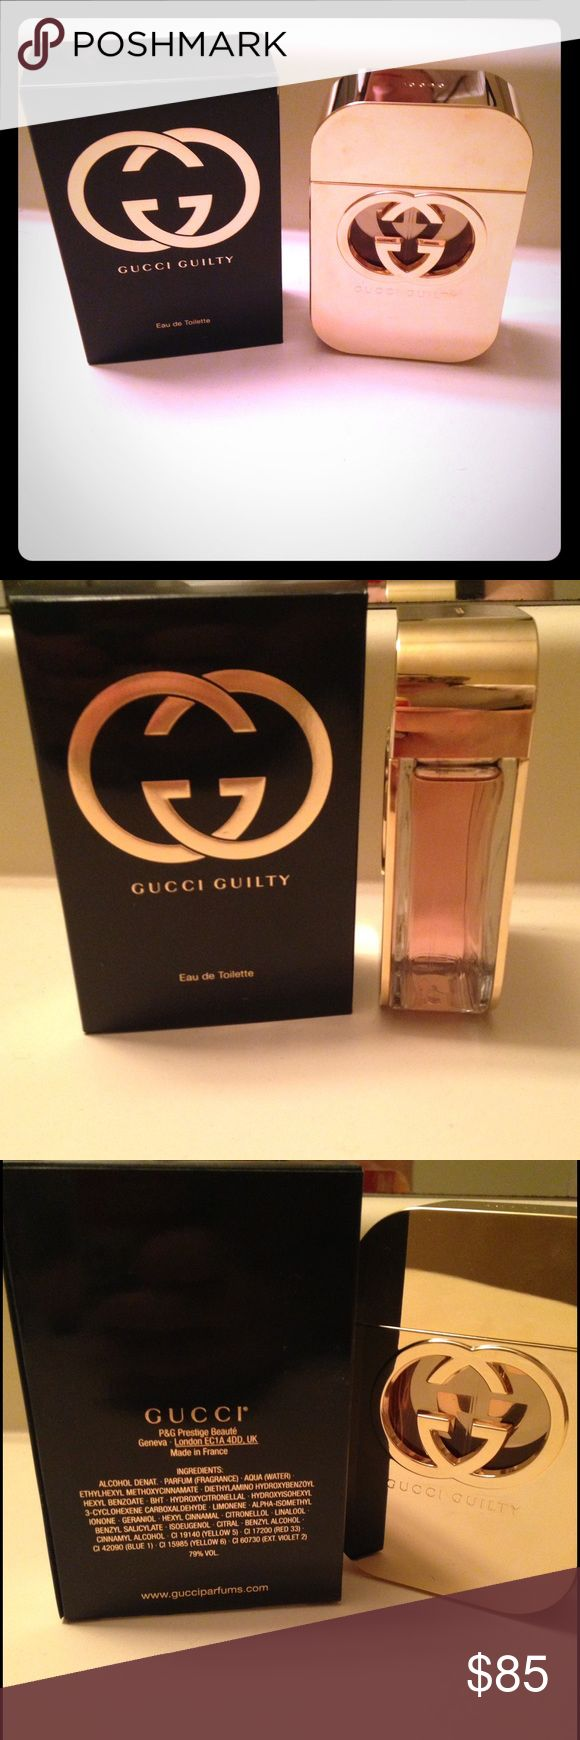 *BRAND NEW* Women's Gucci Guilty 75ml perfume So my boyfriend and mom did not communicate well about Christmas presents and both ended up getting me my favorite perfume. As much as I love it I just don't need 2 giant bottles of it, its brand new still in the box haven't even opened the bottle! Smells wonderful💗💗💗 Gucci Other